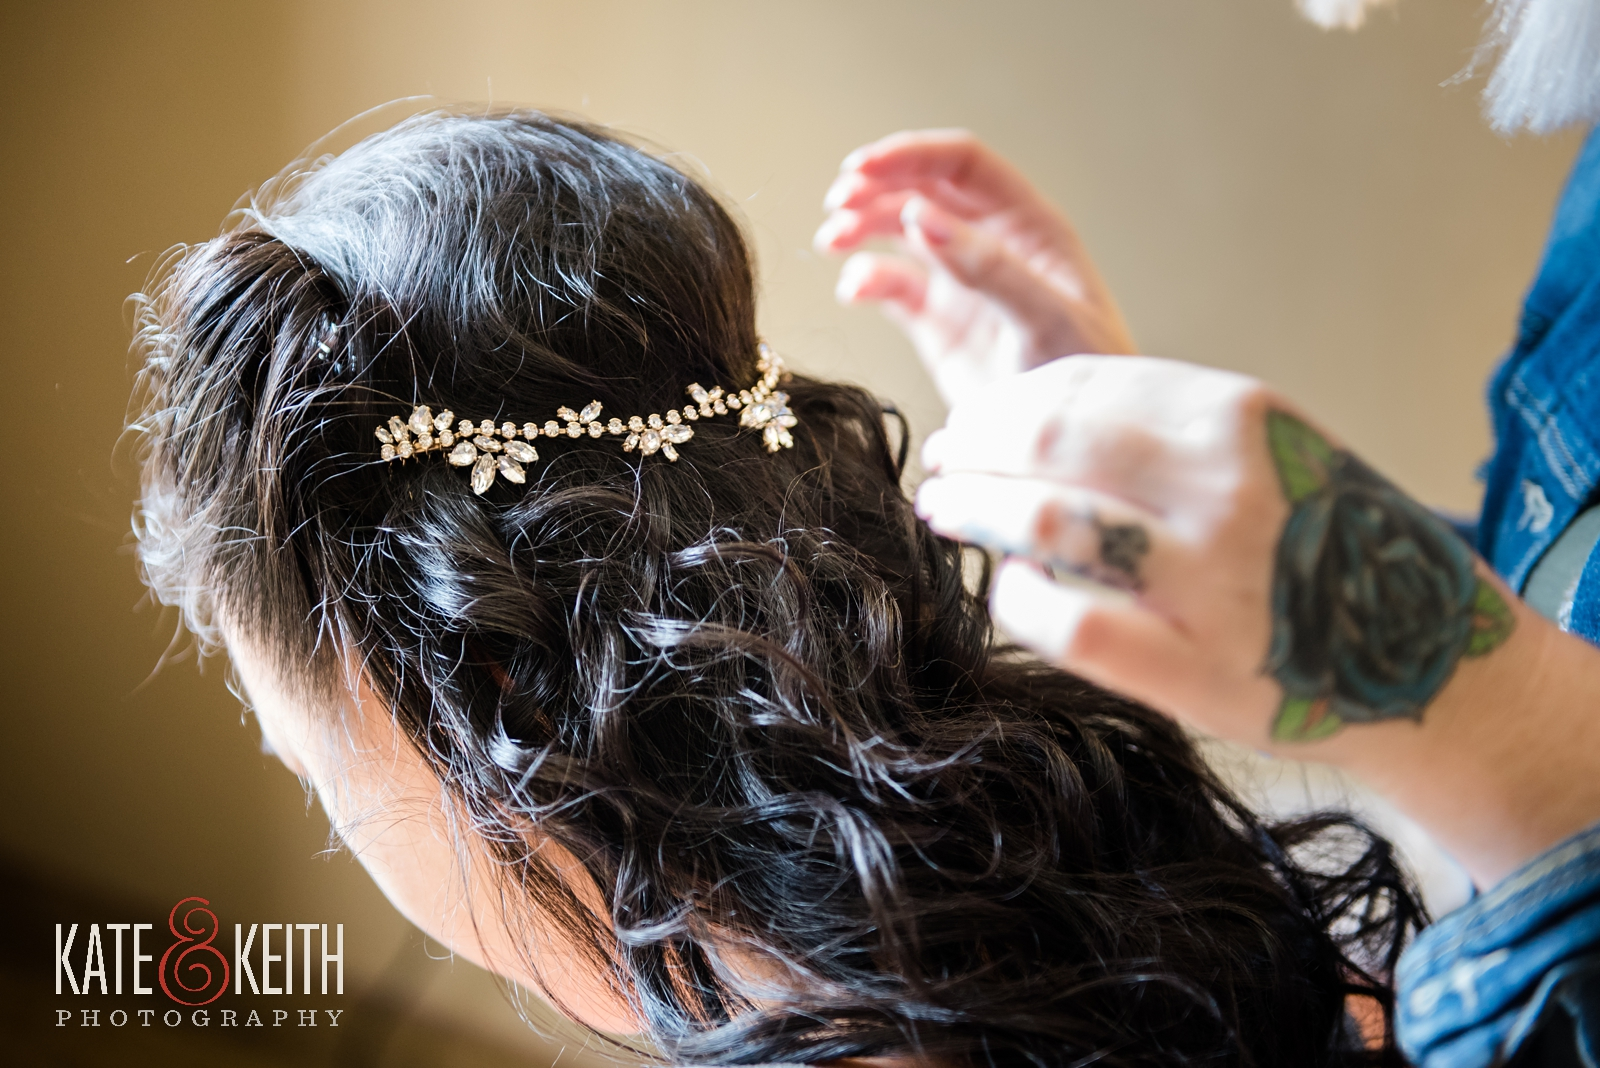 wedding weekend, Jackson, New Hampshire, Whitney's Inn, getting ready, wedding photographers, weekend events, outdoor wedding, comfortable wedding shoes, wedding gown by Jewel, autumn wedding, fall wedding, mountain wedding, weekend wedding, wedding hair, wedding jewelry